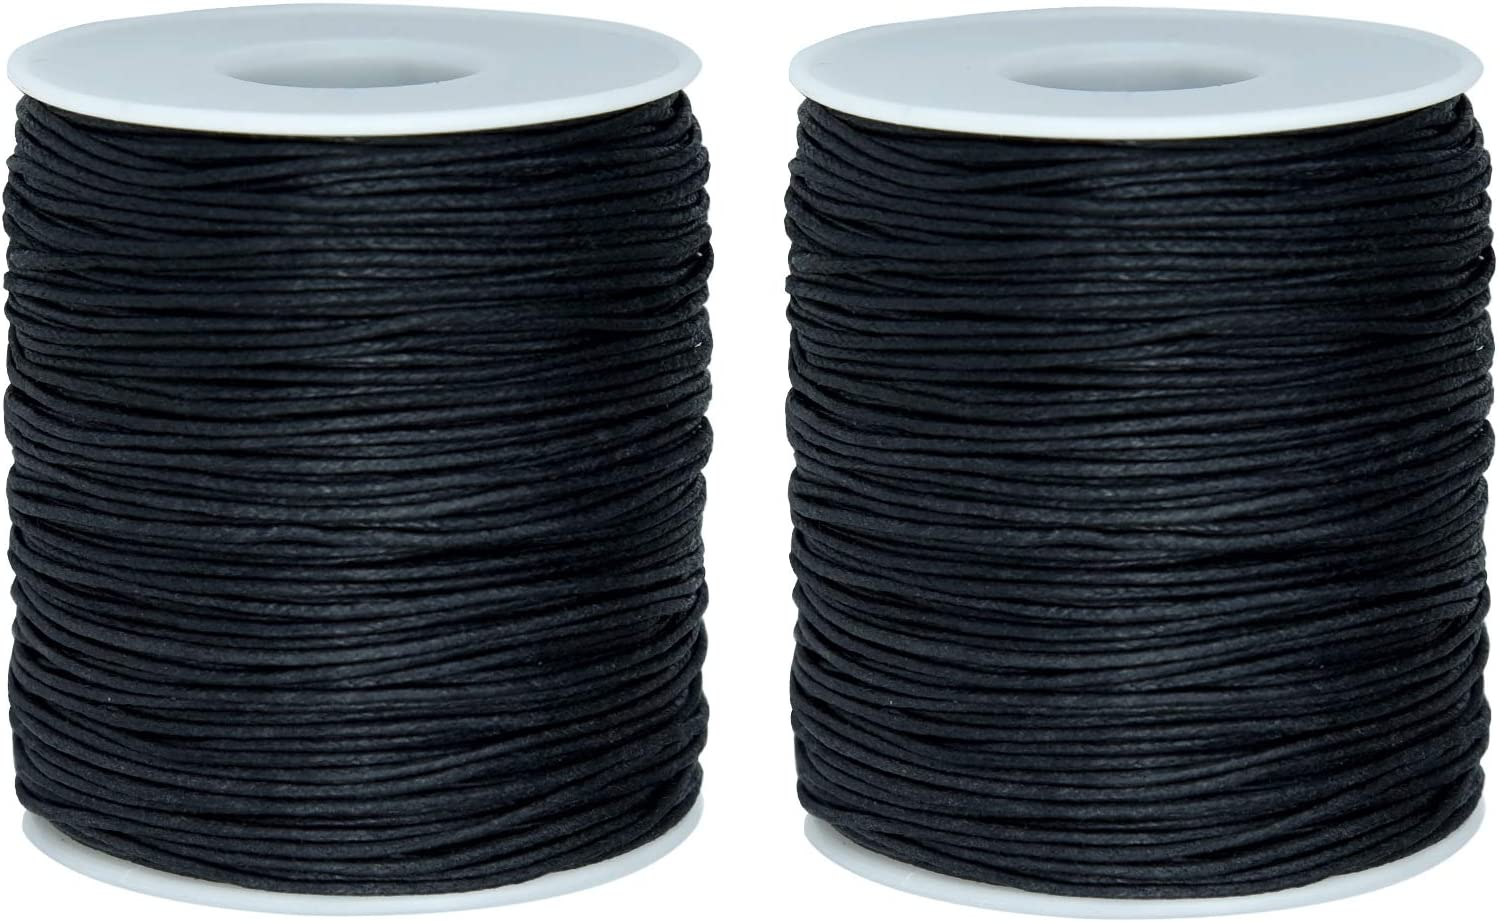 Dxhycc 200 Yards 1mm Waxed Super sale Cotton Cord Max 90% OFF Thread Beading String for